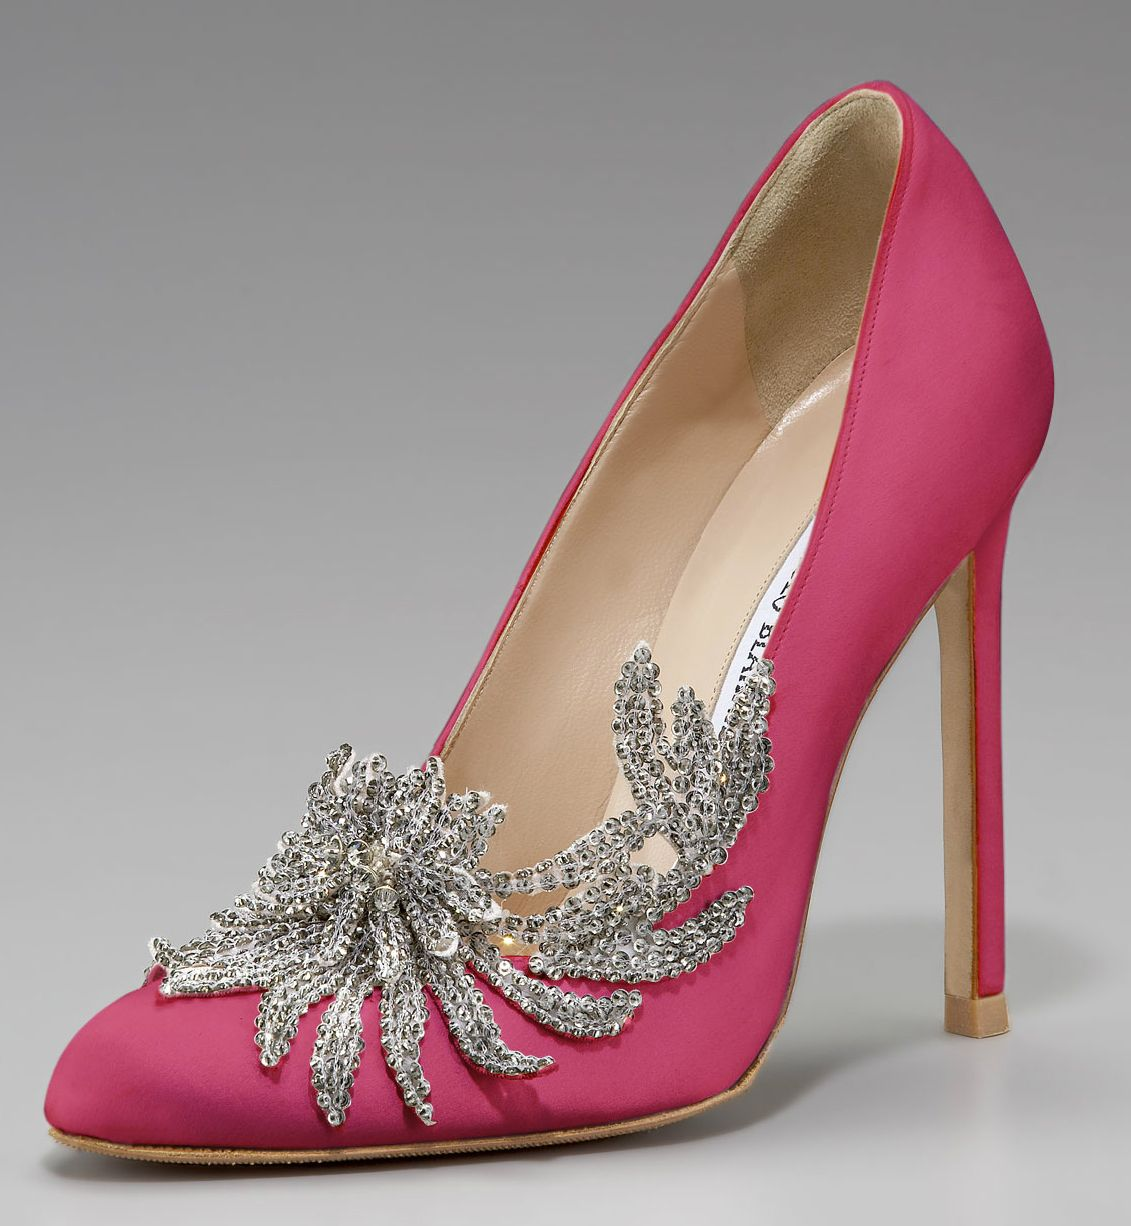 manolo blahnik swan wedding shoes